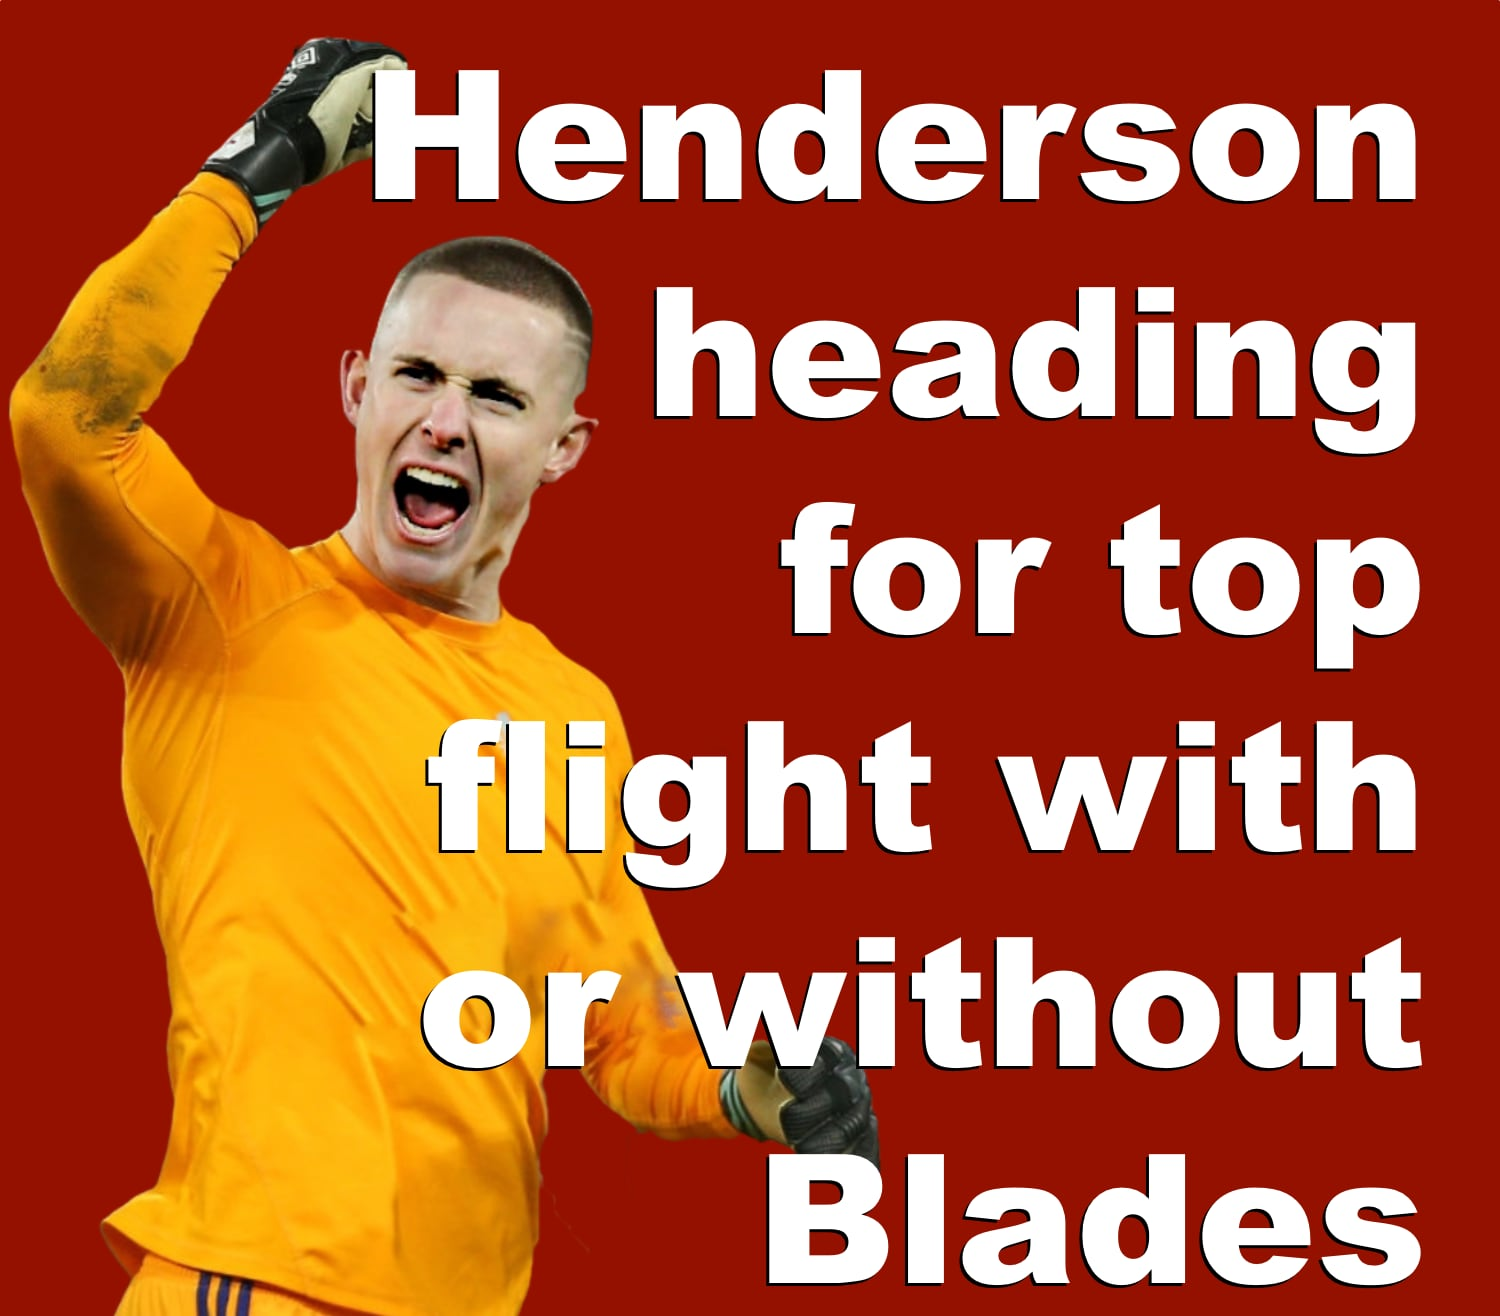 Dean Henderson heading for the top display.jpg